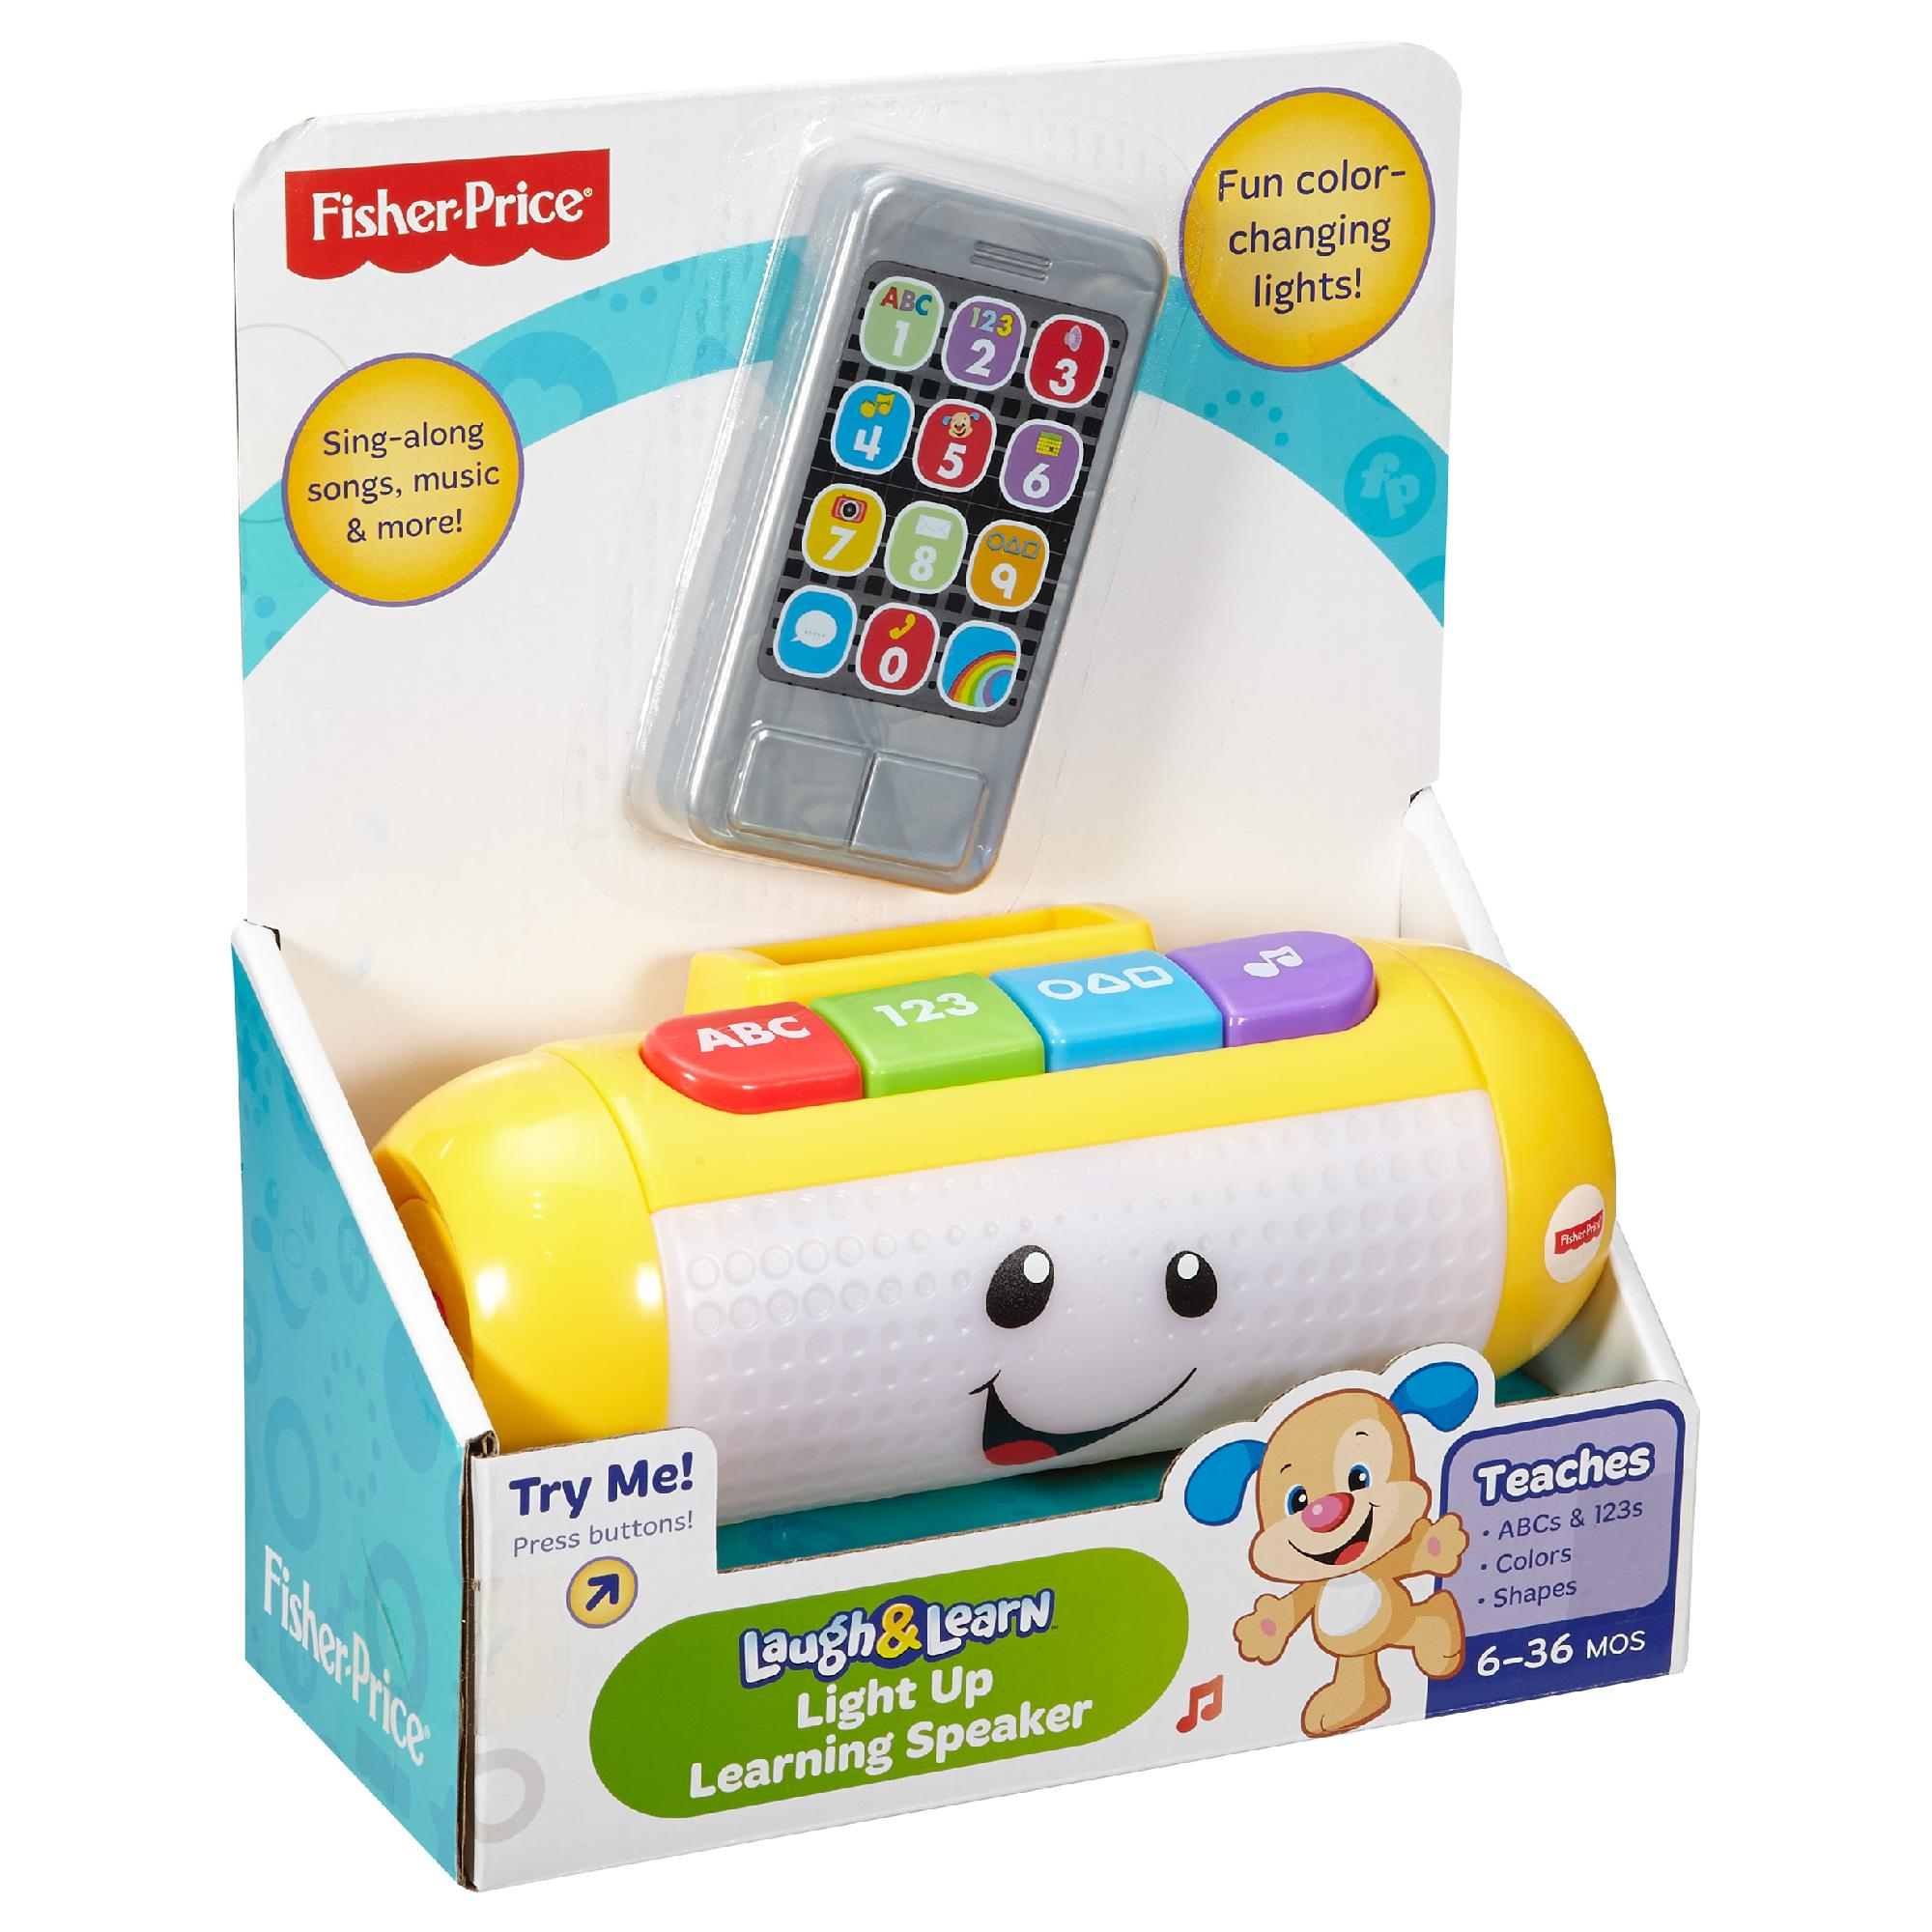 Fisher Price Laugh & Learn Learning Kitchen | Fisher Price Laugh Learn Light Up Learning Speaker Walmart Com